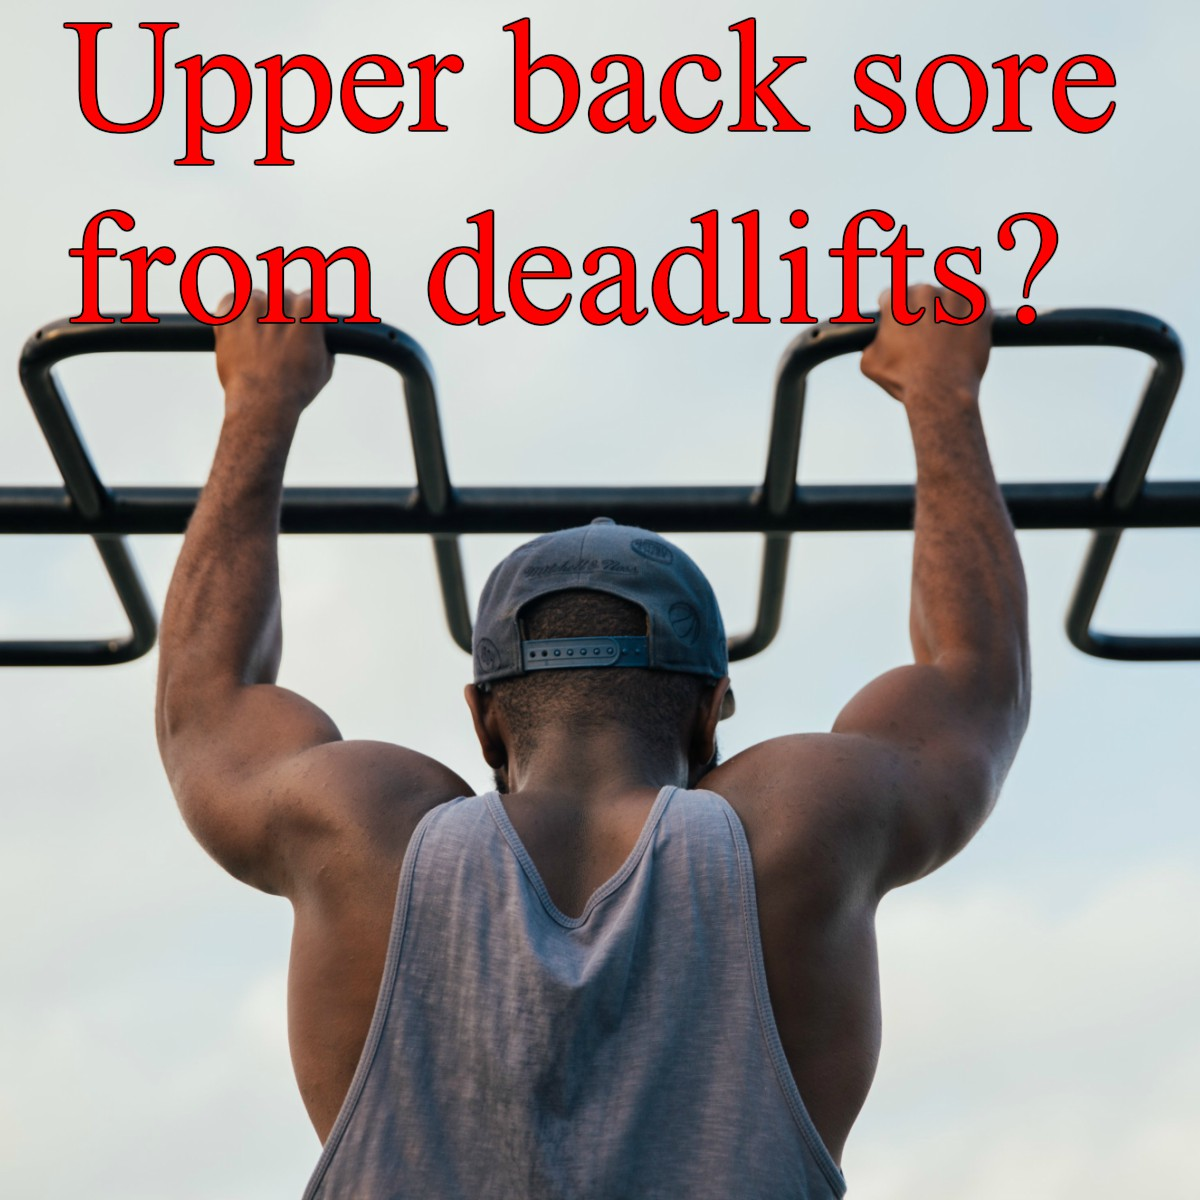 Why Is My Upper Back Sore From Deadlifts? Normal Or Not?